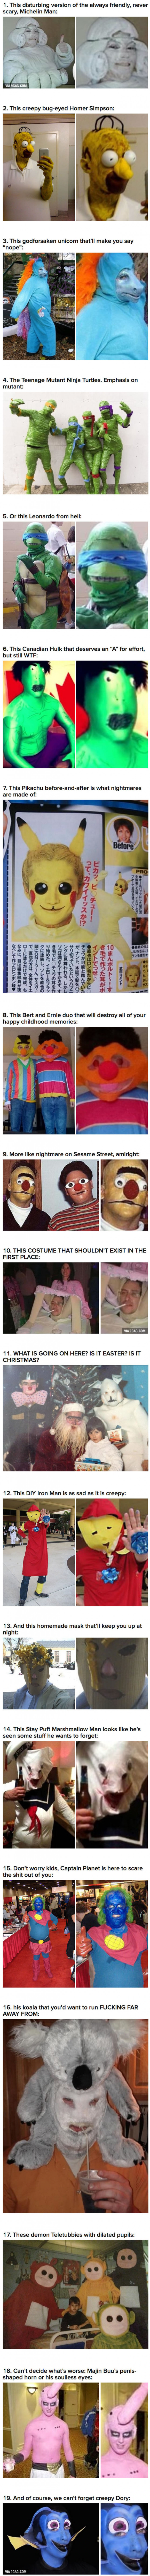 19 Halloween Costumes That Failed So Hard They'll Scare You Shitless